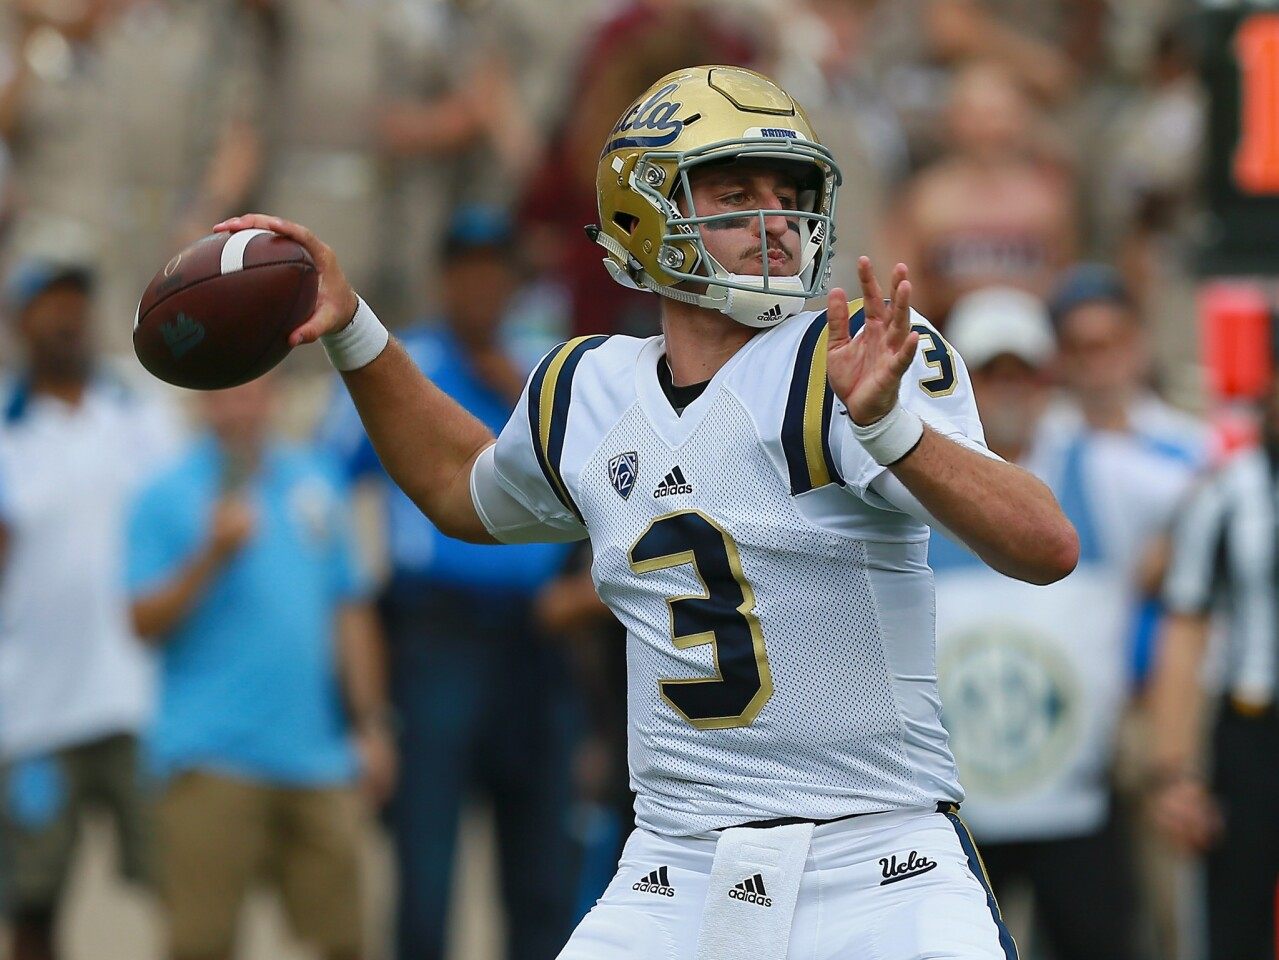 UCLA's Josh Rosen looks in the mirror and takes responsibility in loss to Texas A&M